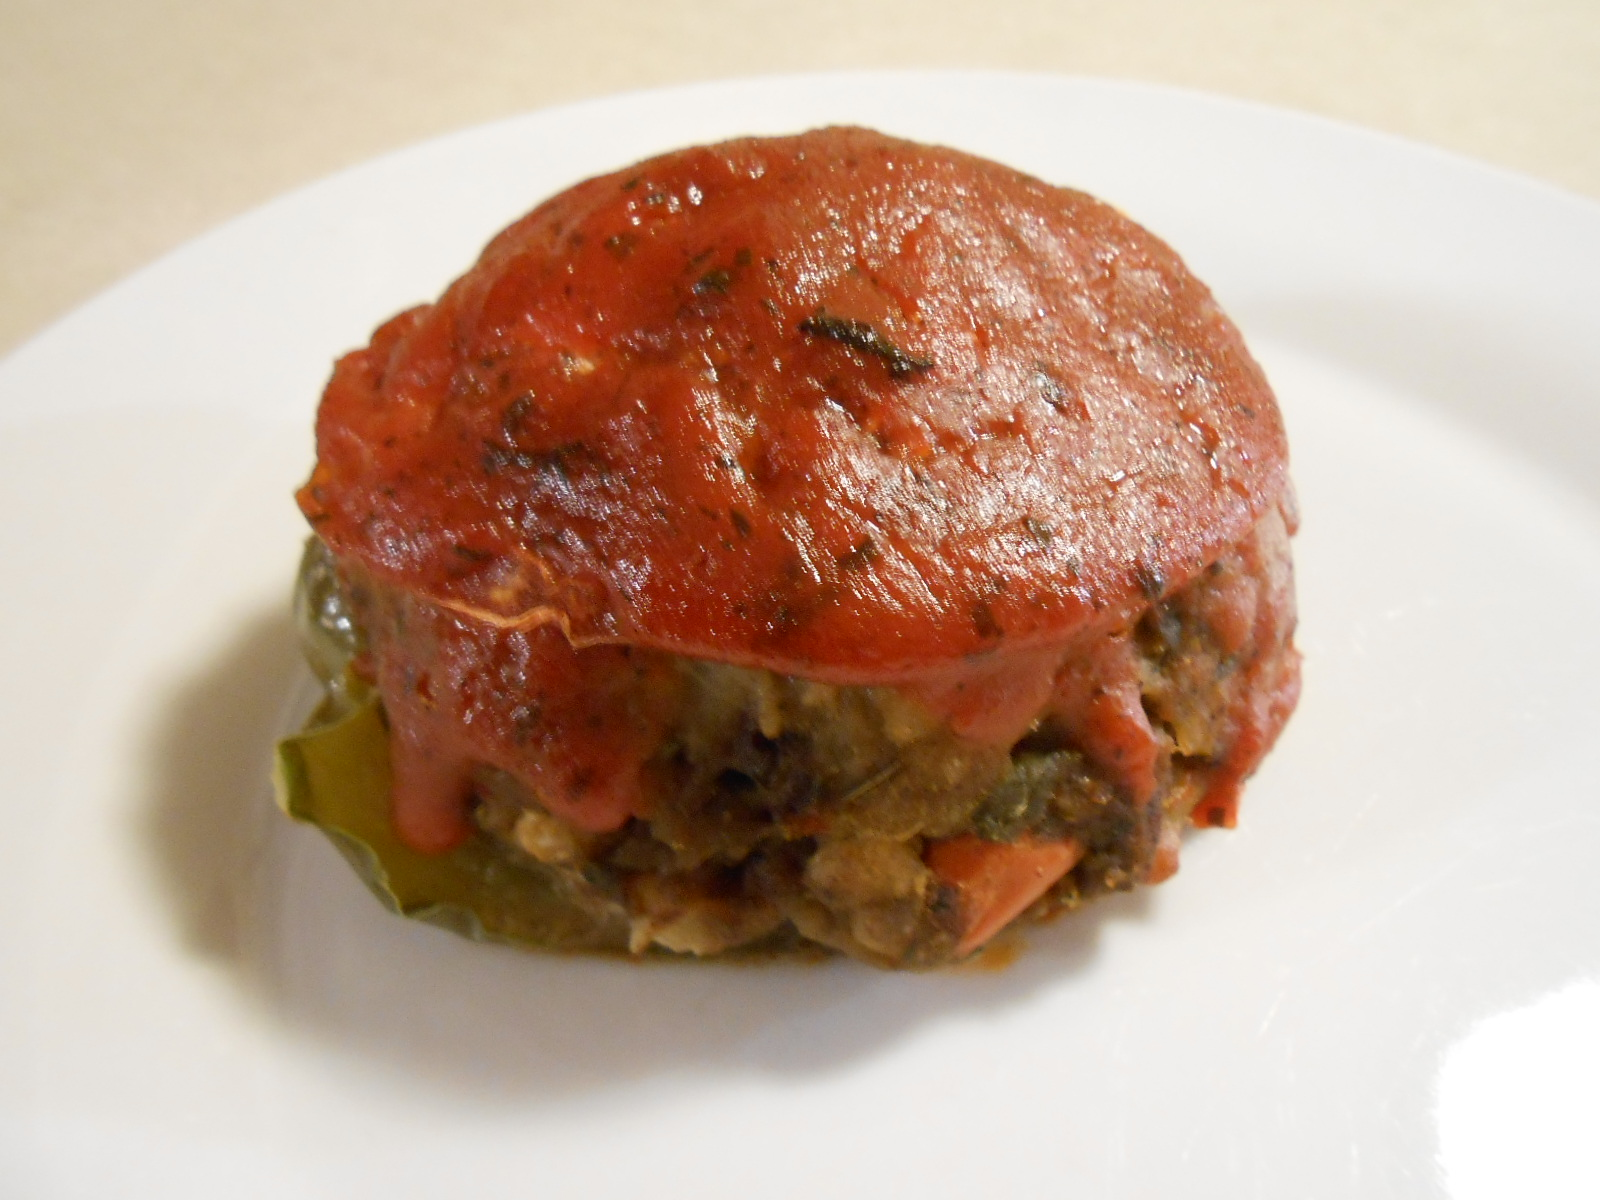 TOP SHELF STUFFED PEPPERS SINGLE SERV.